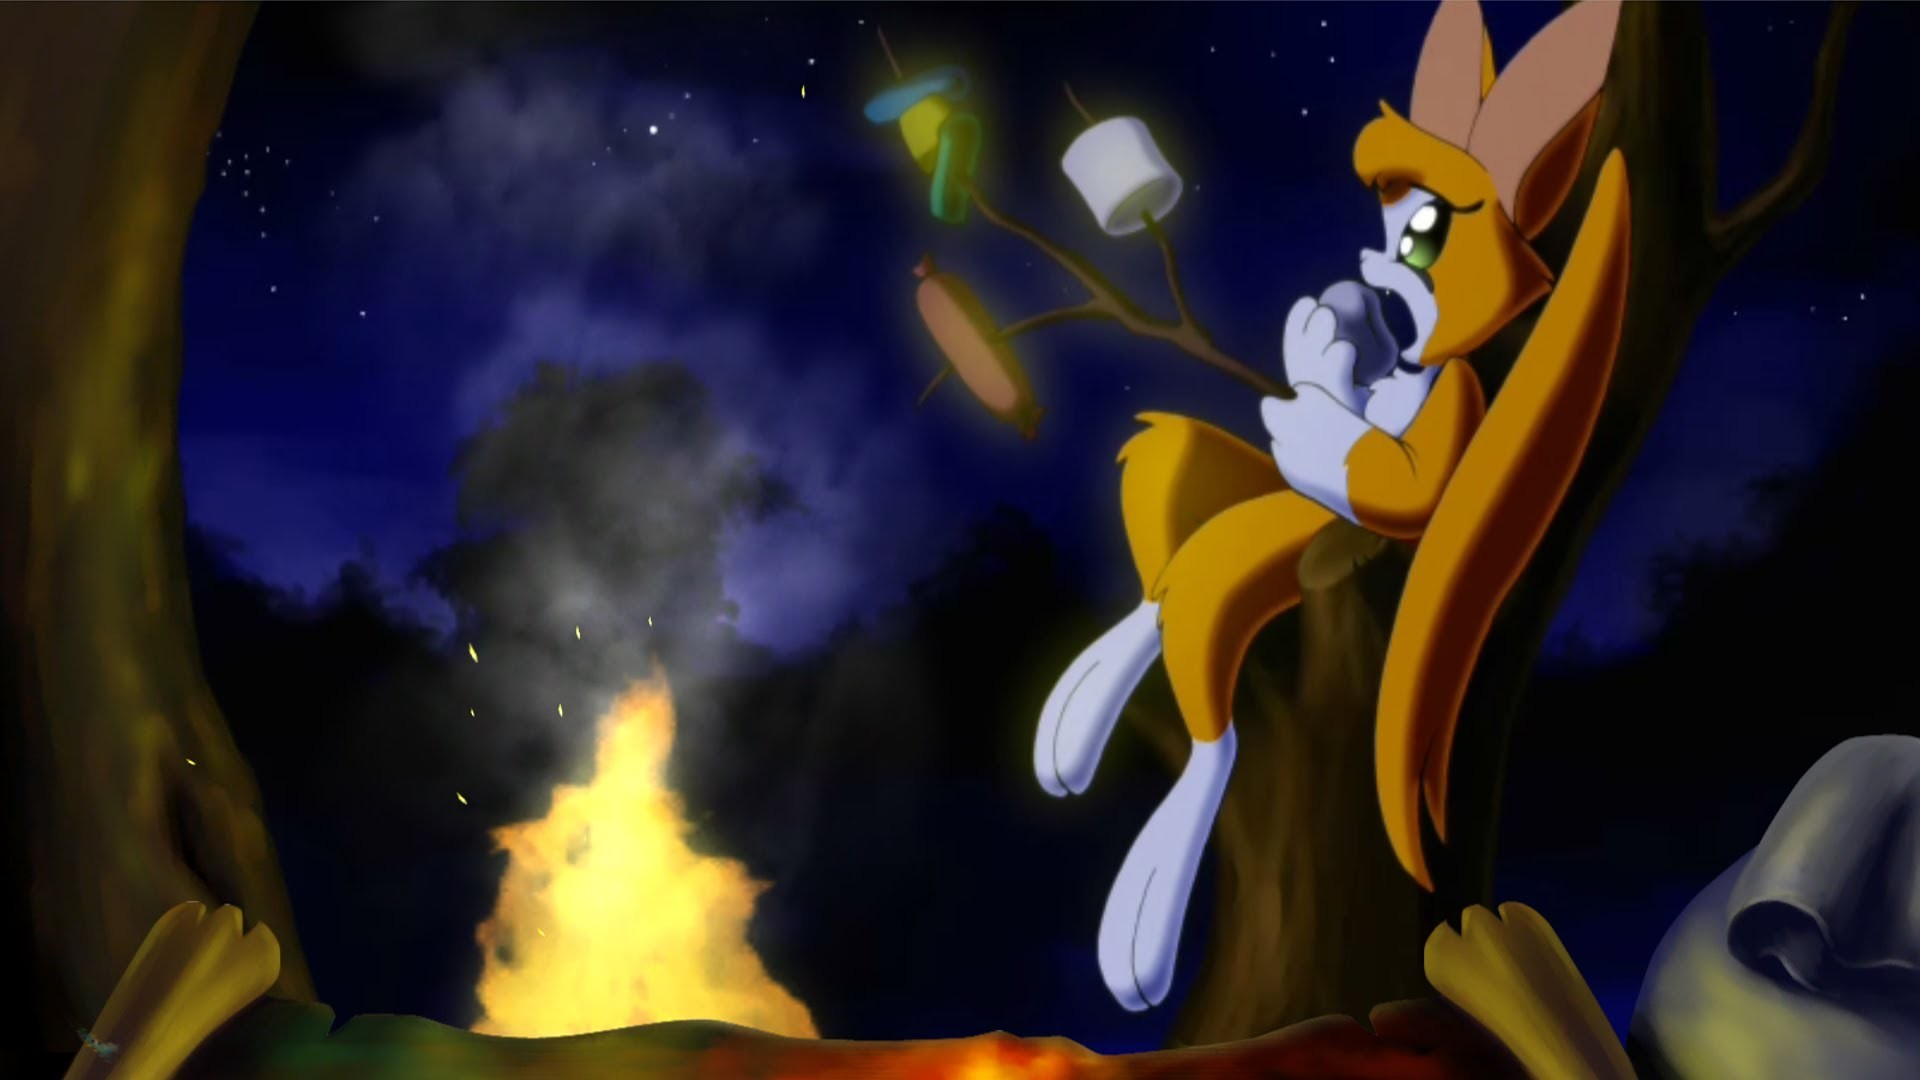 Dust: an Elysian Tail (HD) The Land of Remembrance